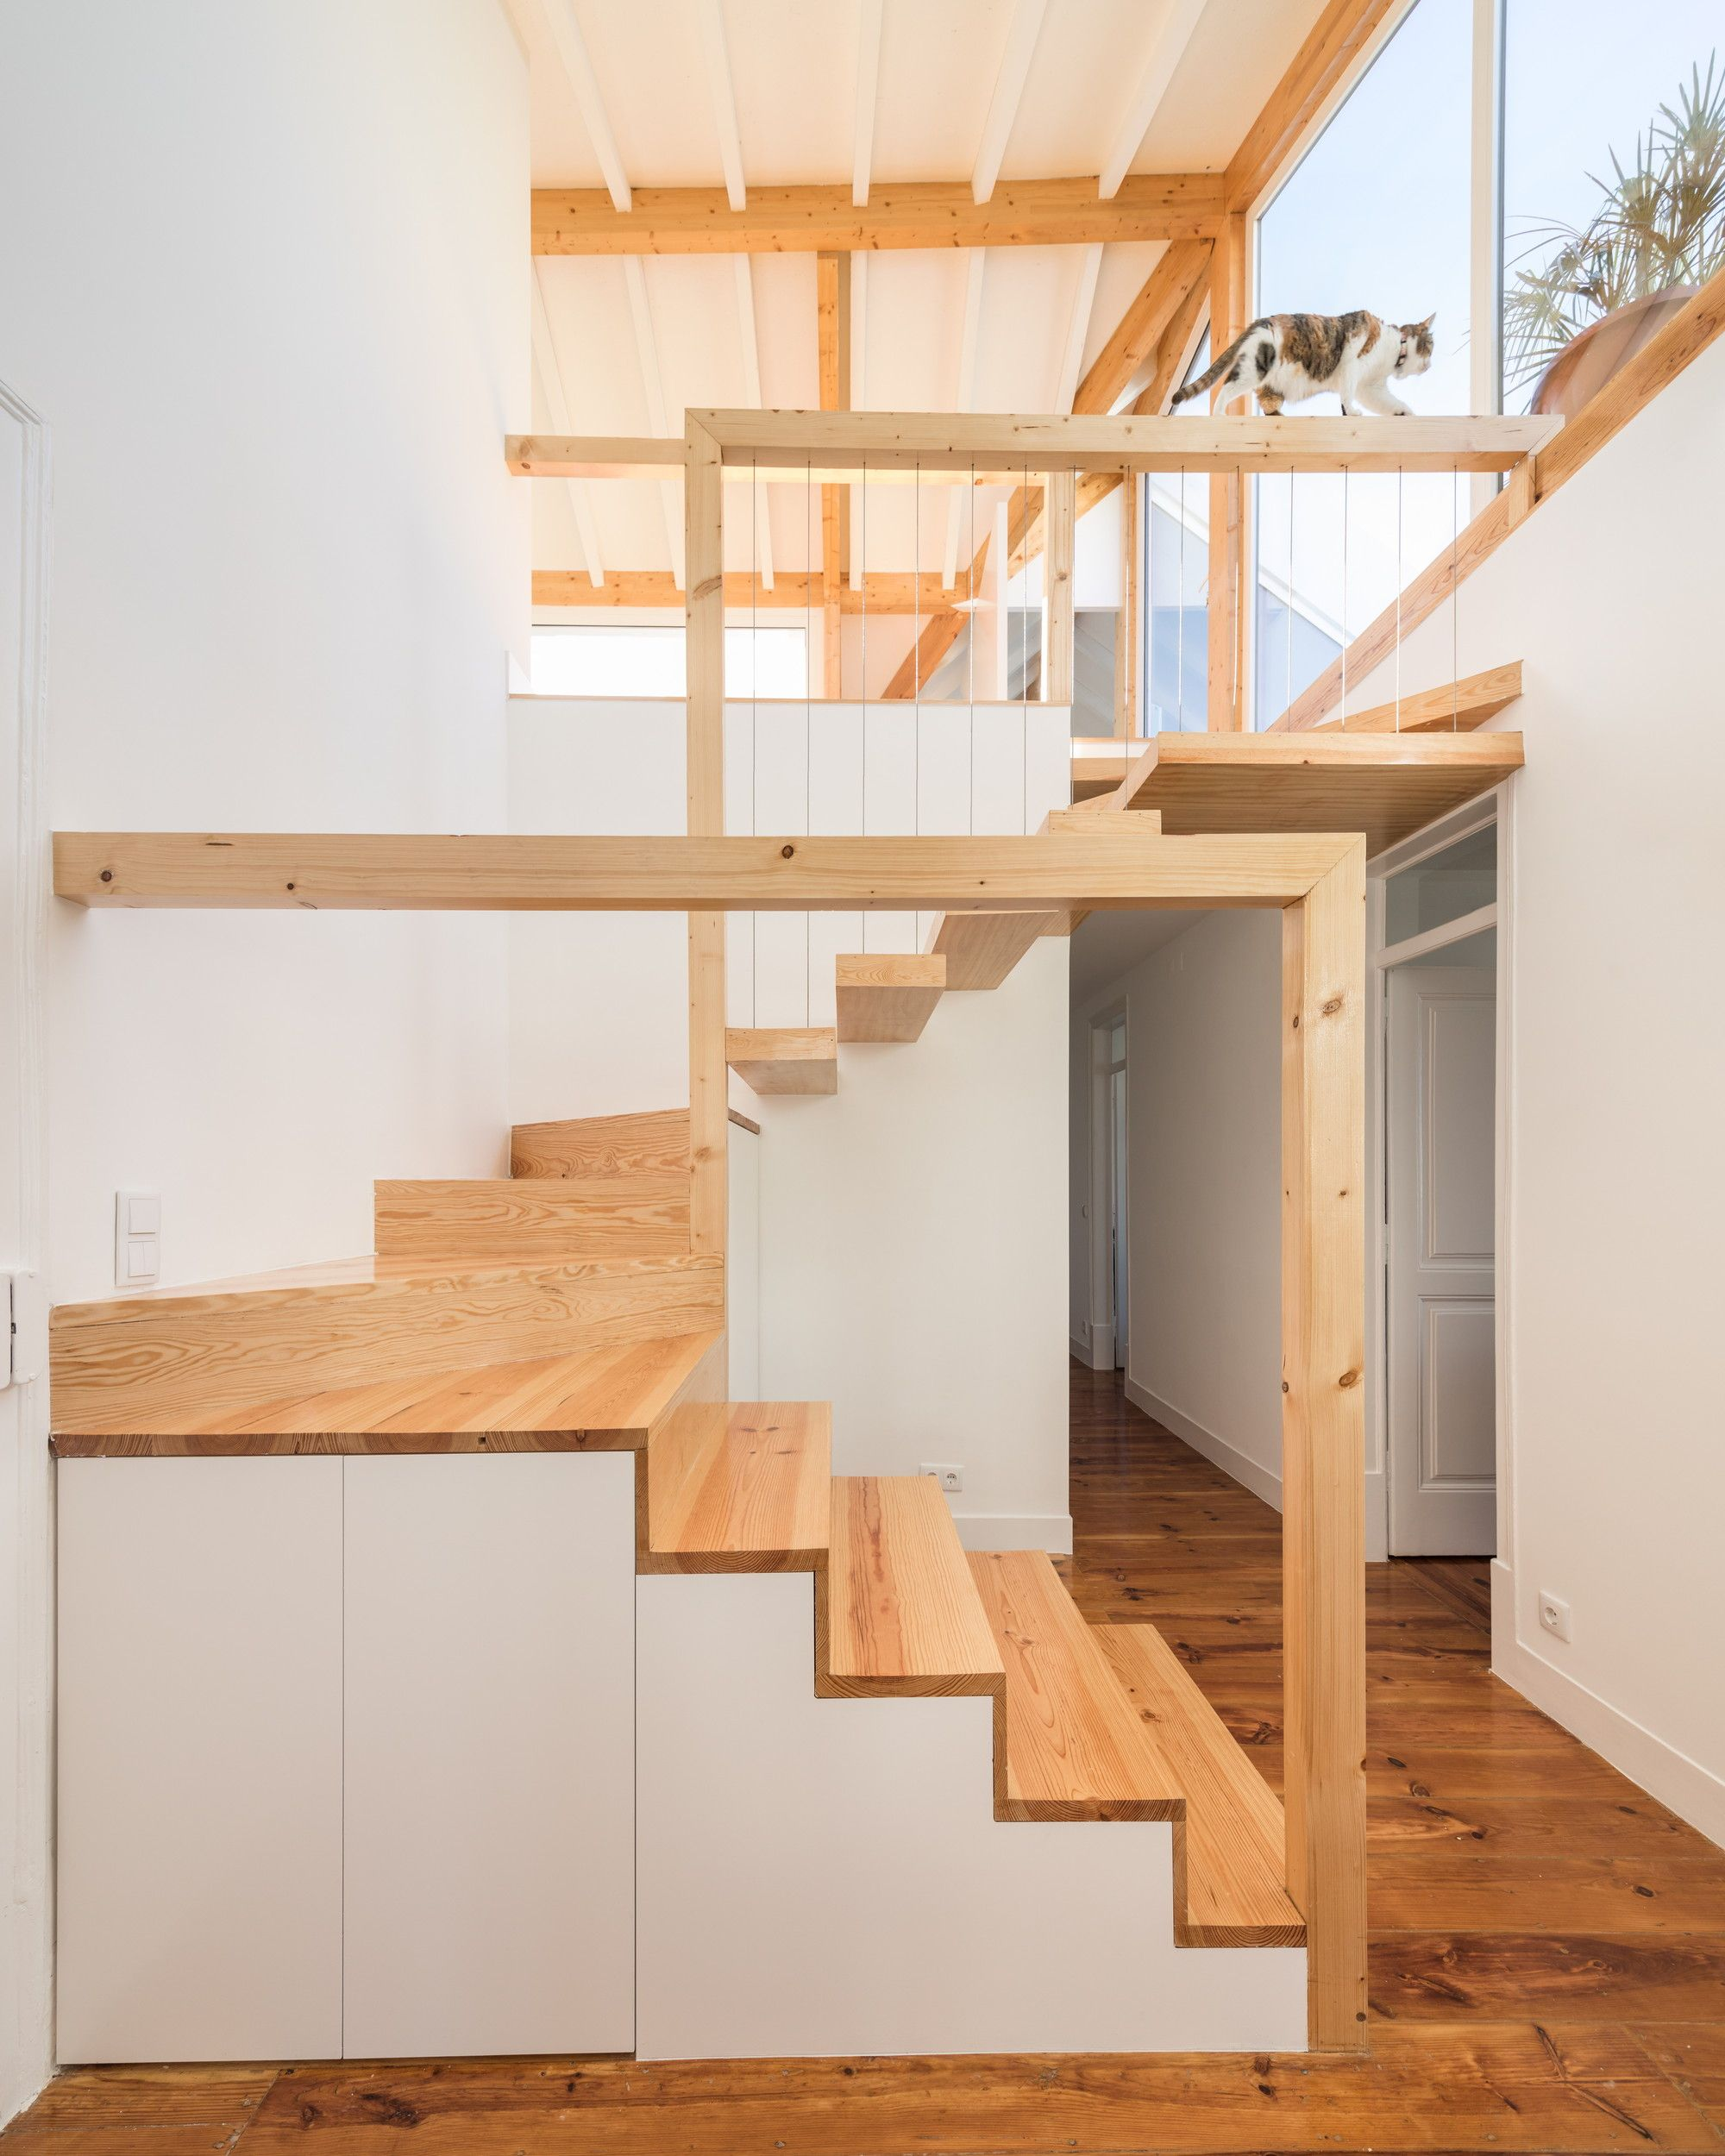 Painted Basement Stairs Ideas: Gallery Of CT 37 / BOOST Studio - 25